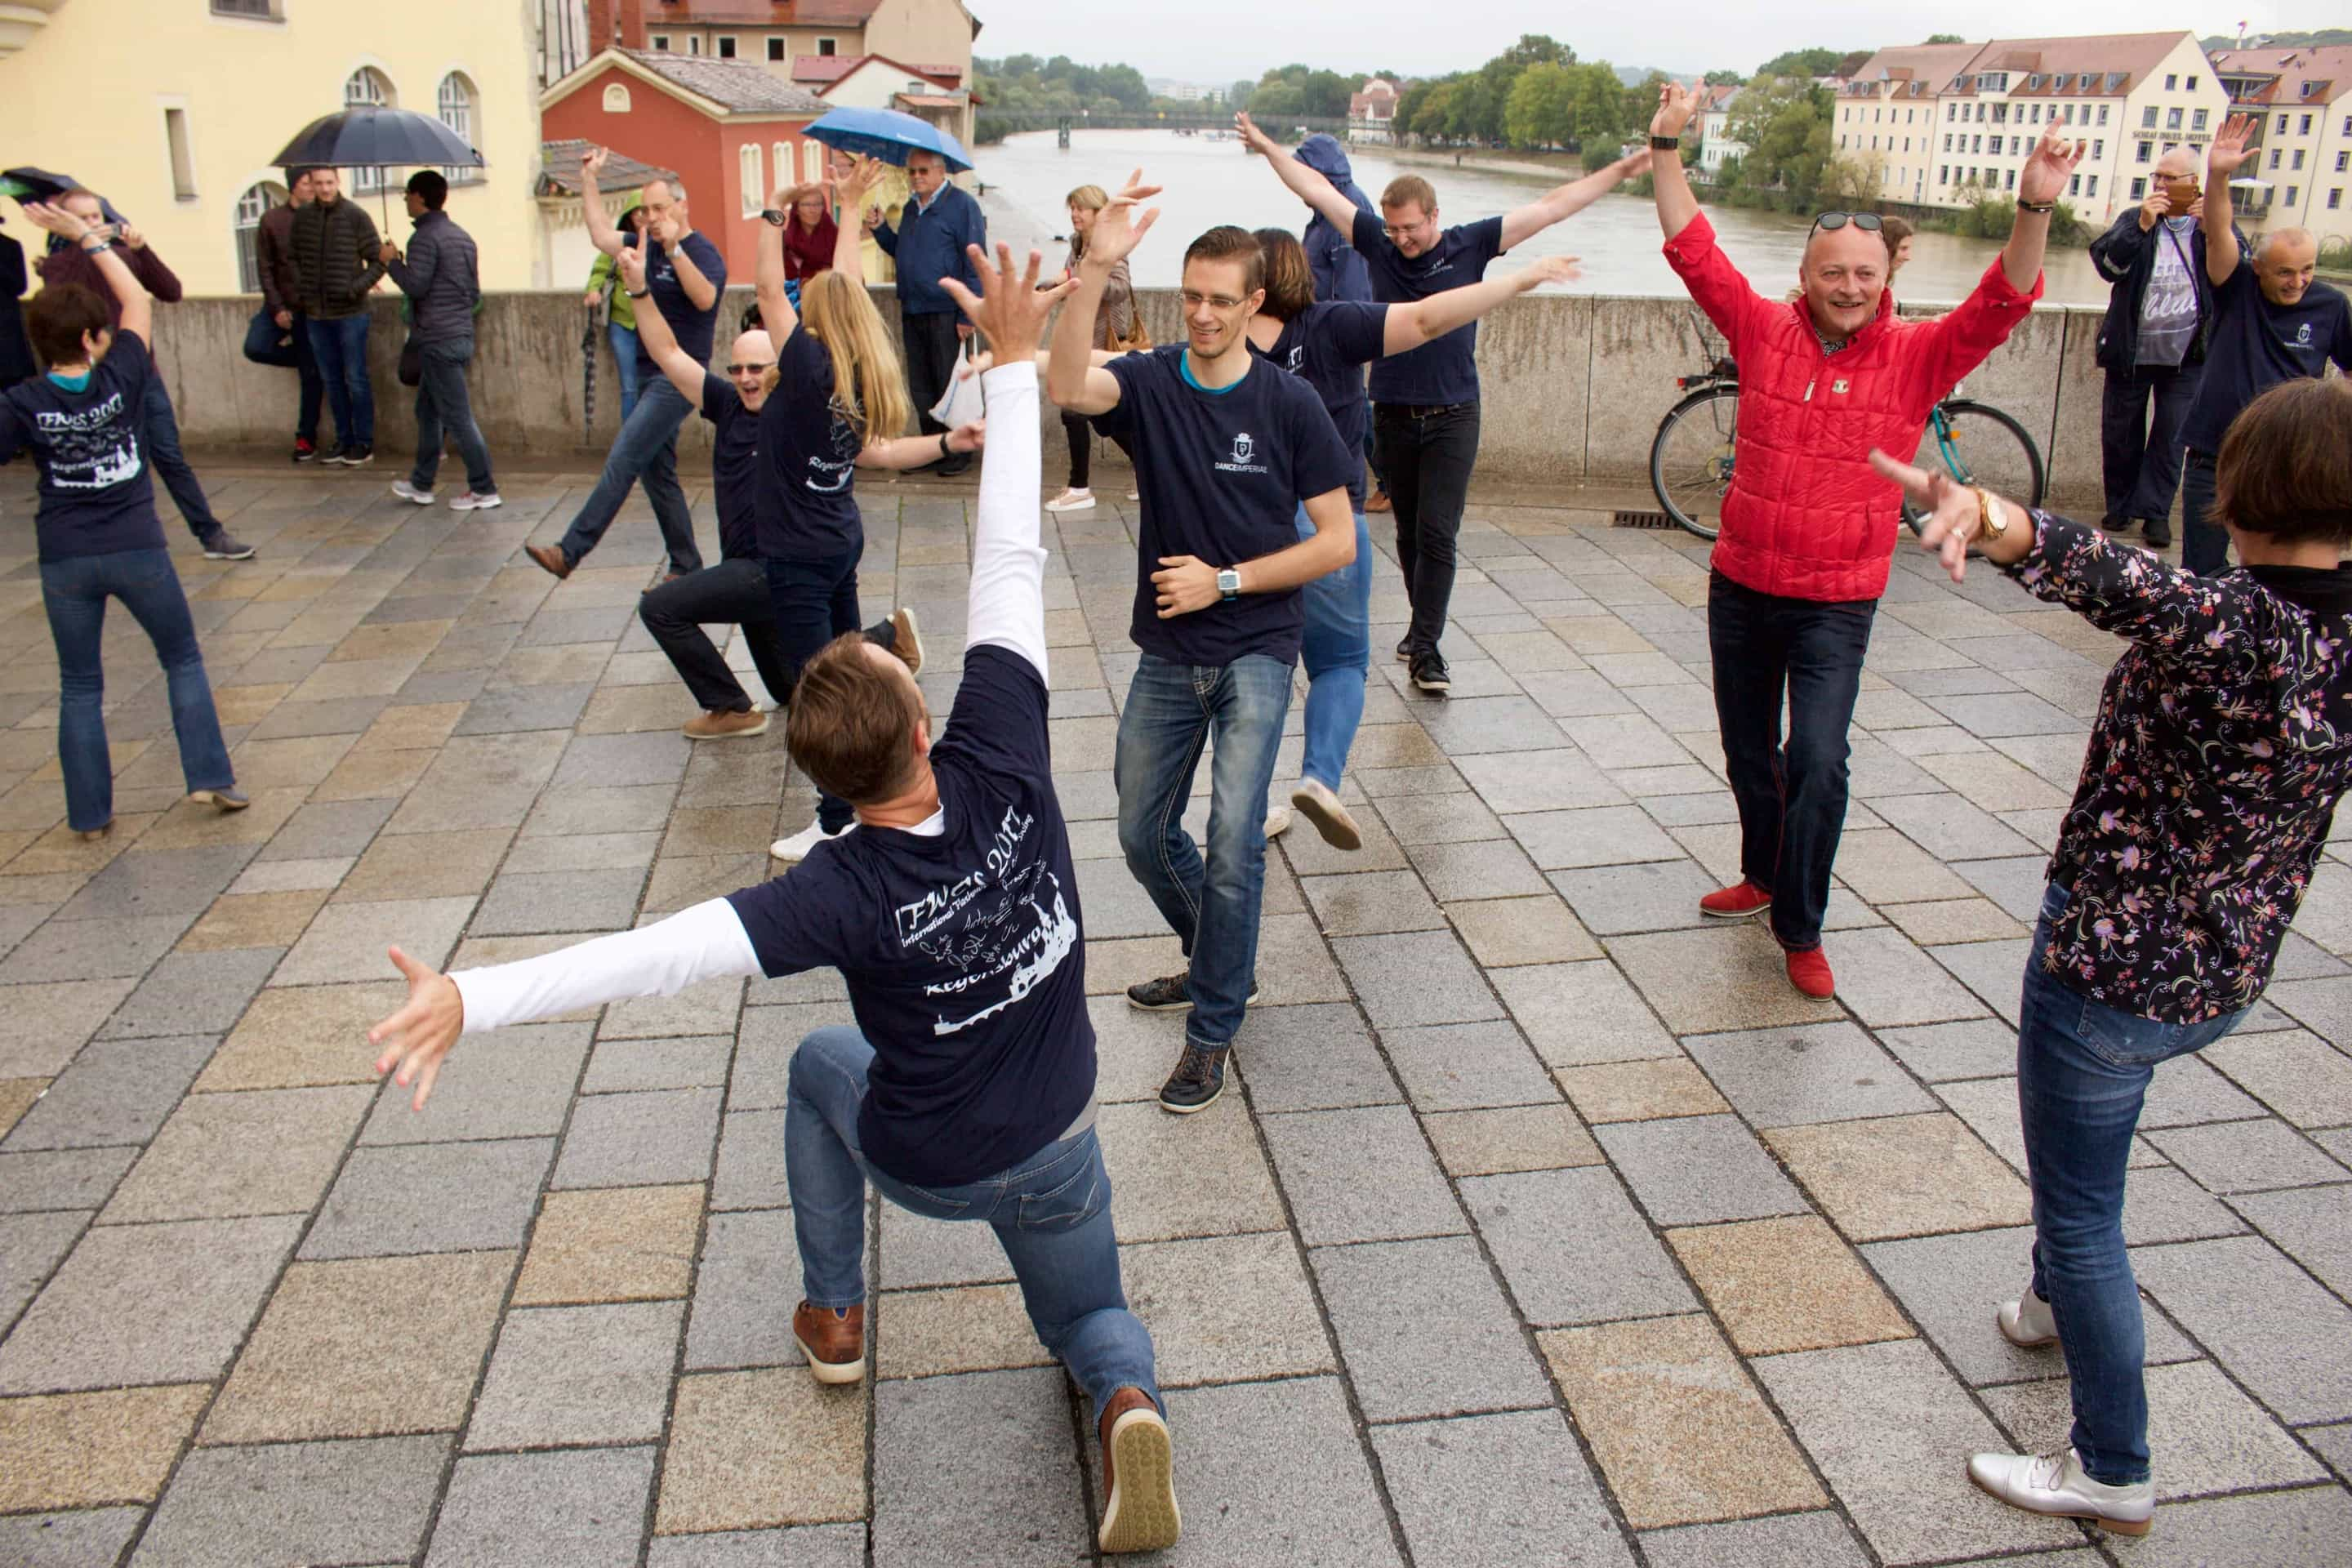 International Flashmob West Coast Swing auf der Steinernen Brücke in Regensburg